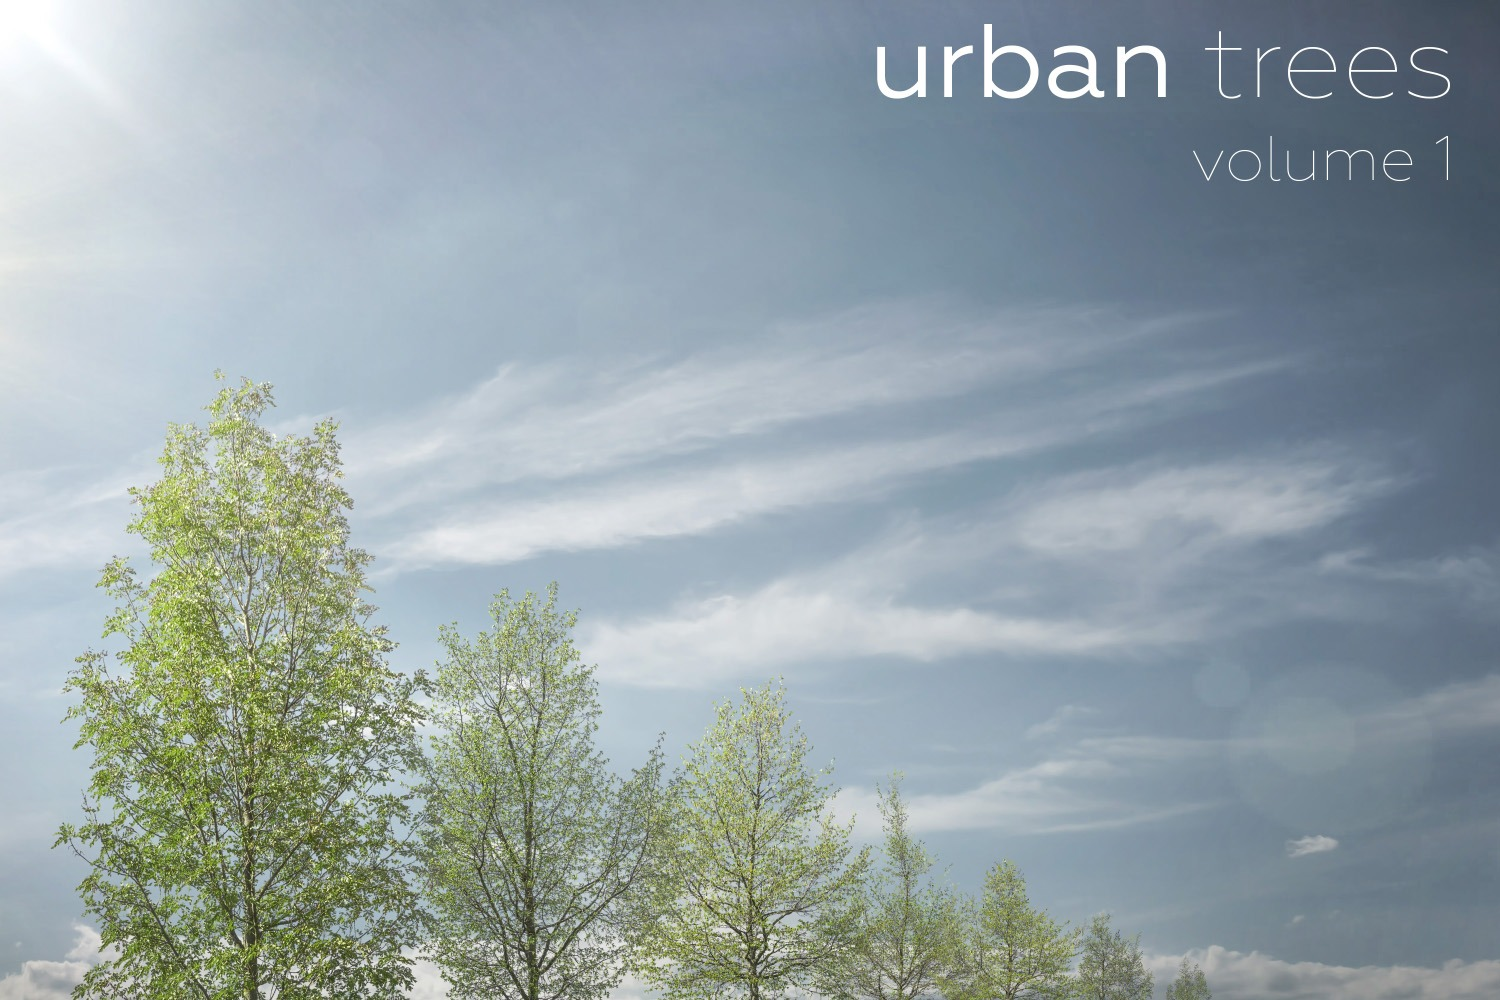 URBAN TREES Volume 1